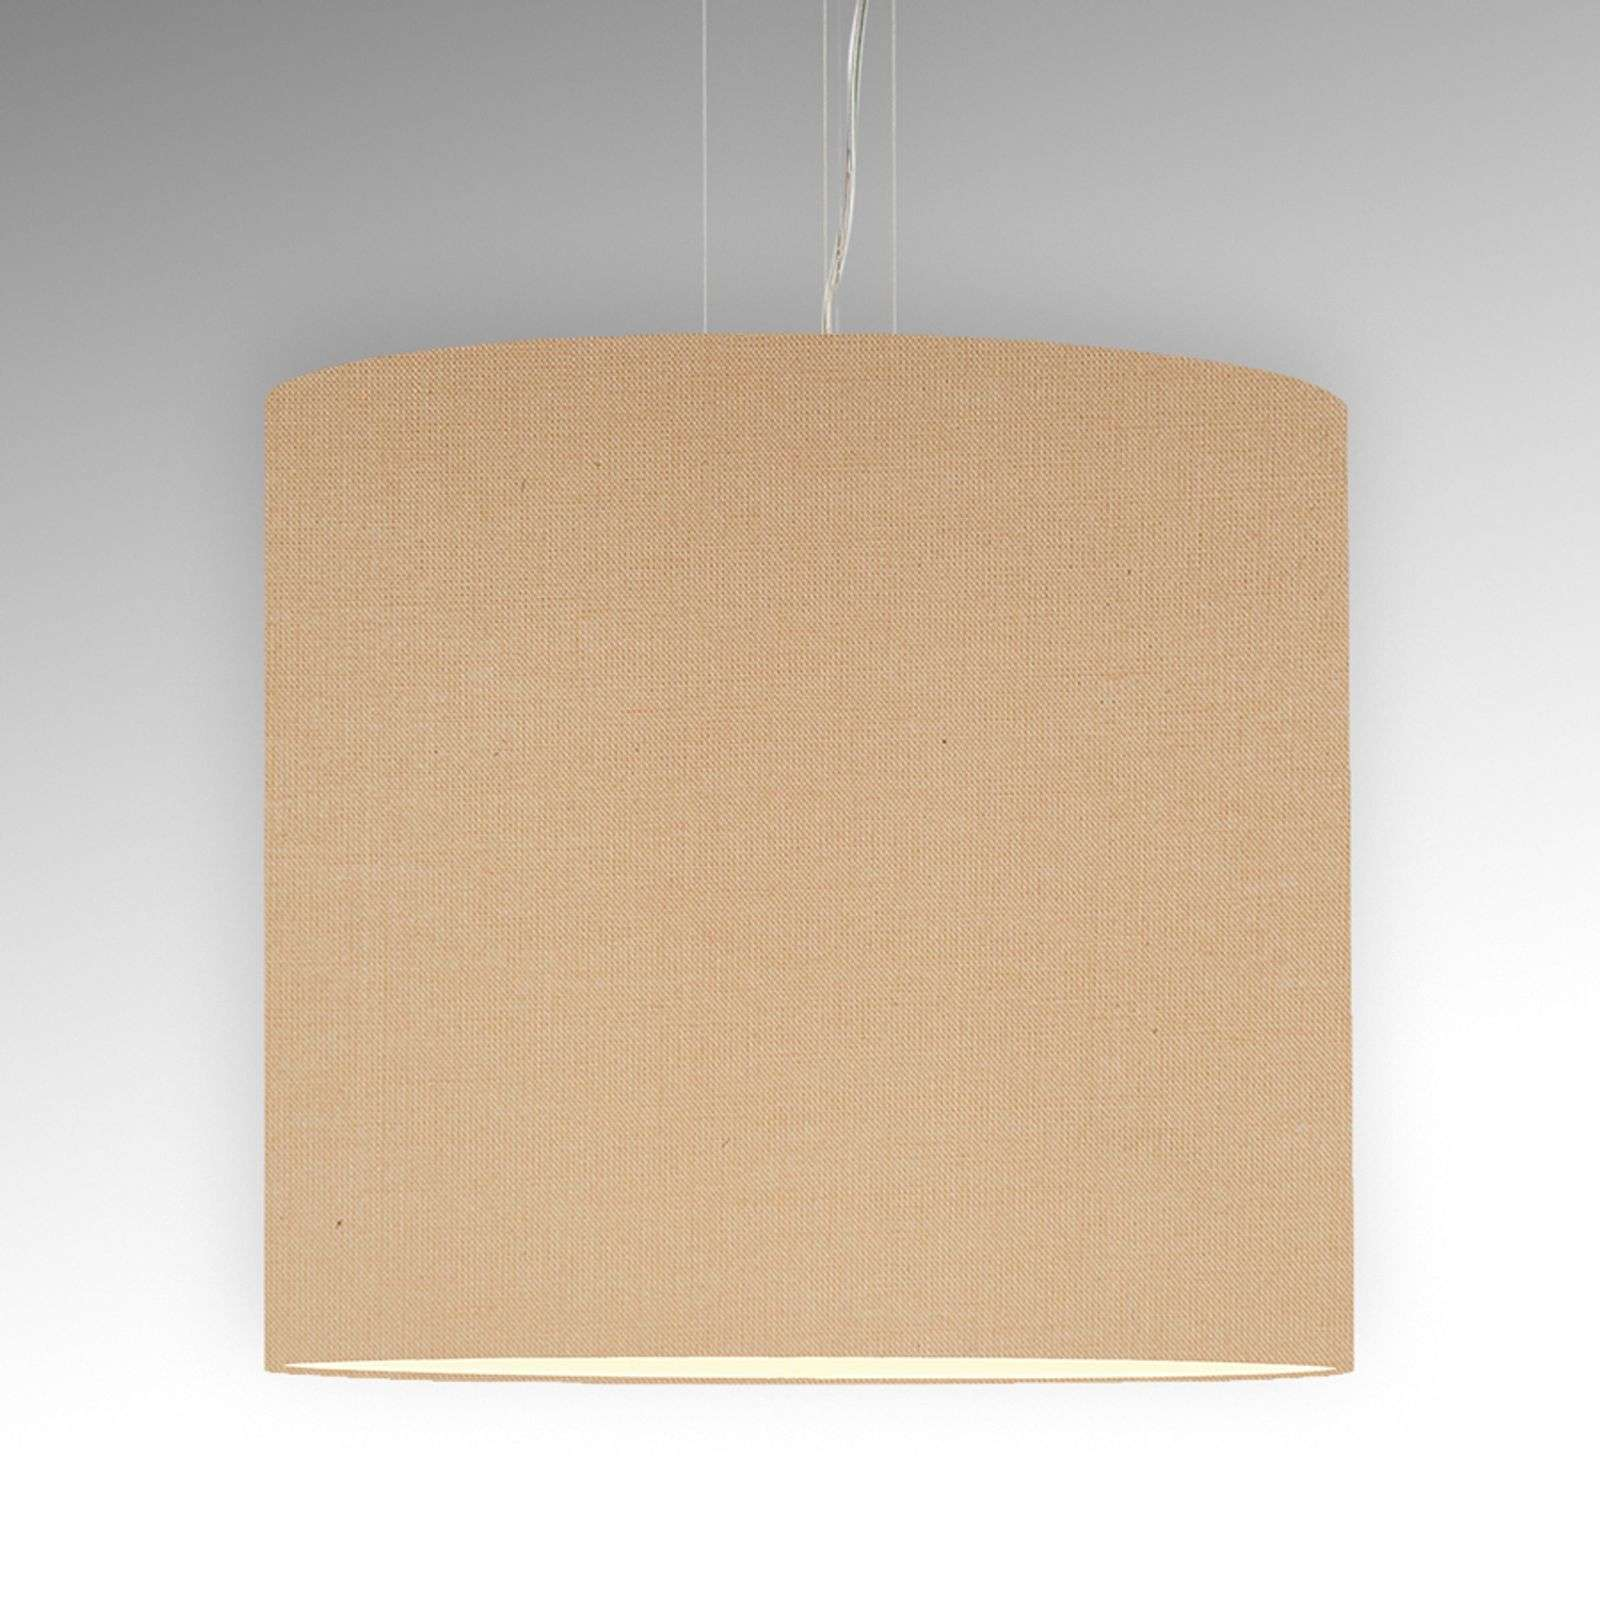 Suspension Tono profil fin beige diamètre 60 cm